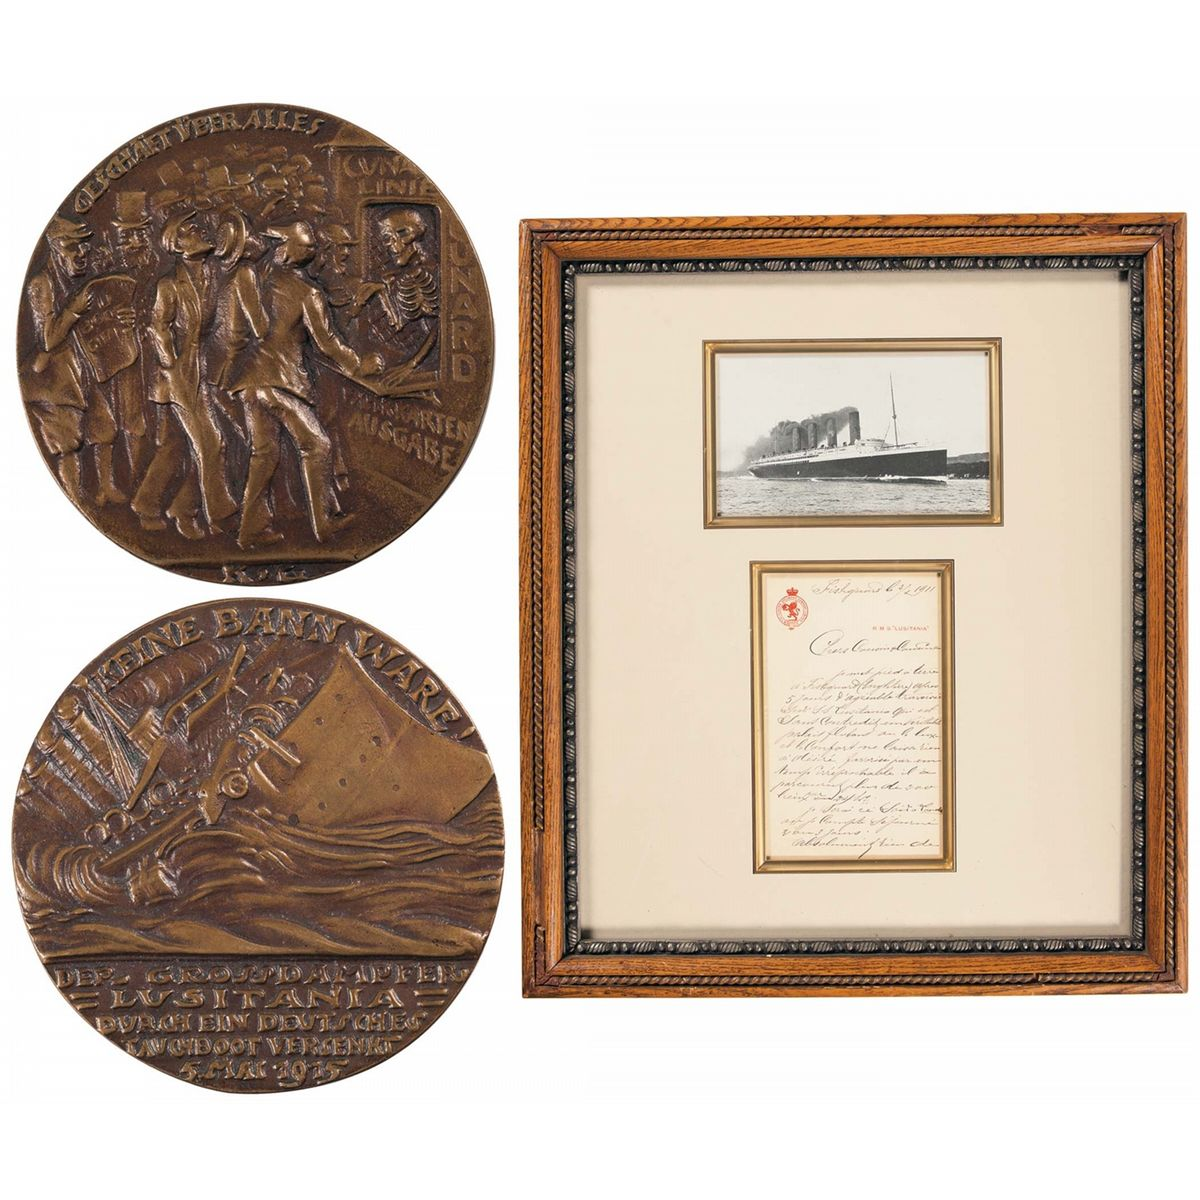 Framed RMS Lusitania Display and German Lusitania Medal